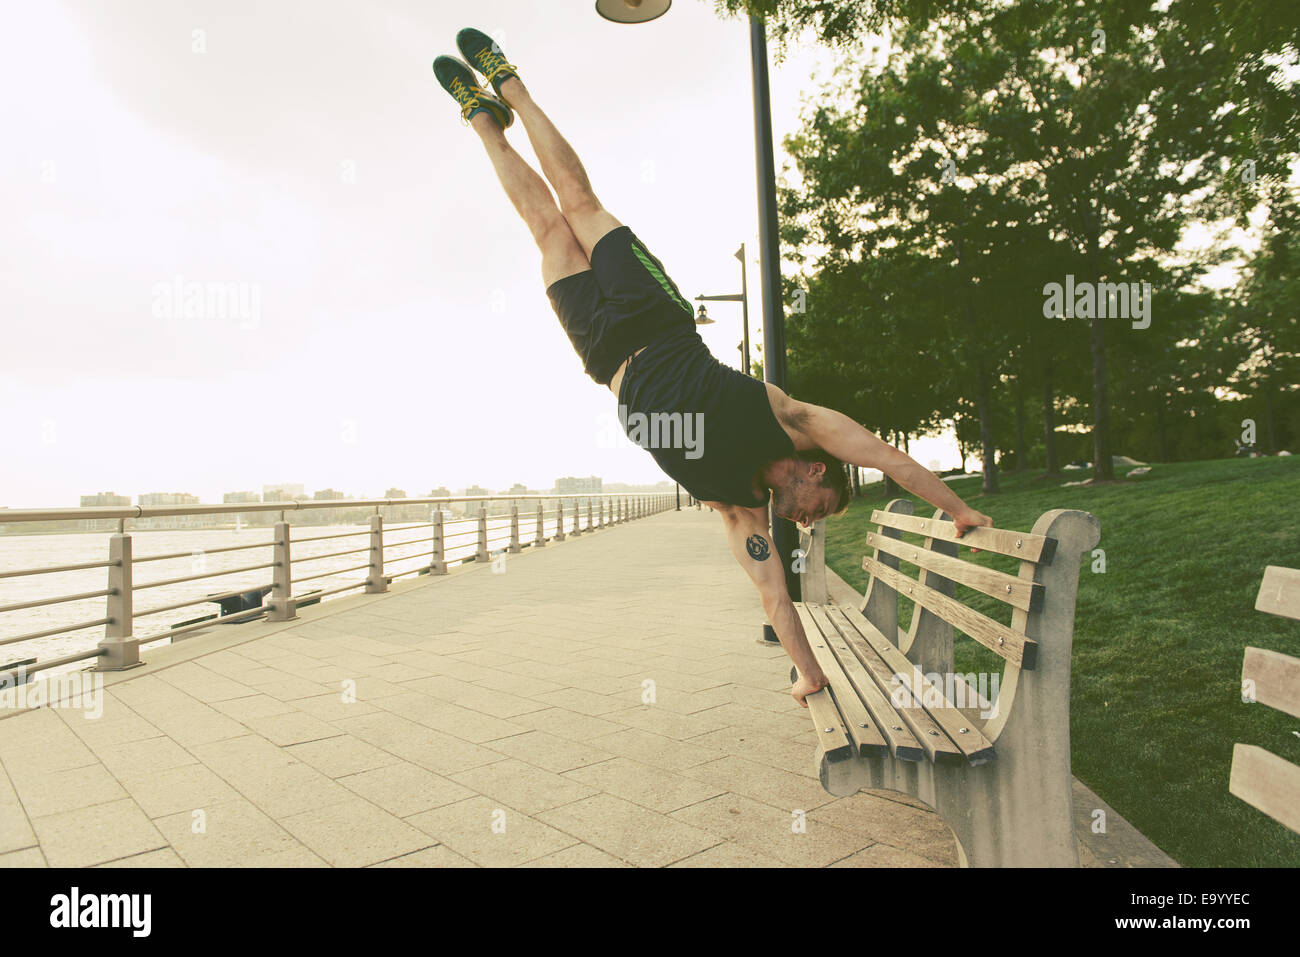 Young man doing handstand on riverside park bench - Stock Image